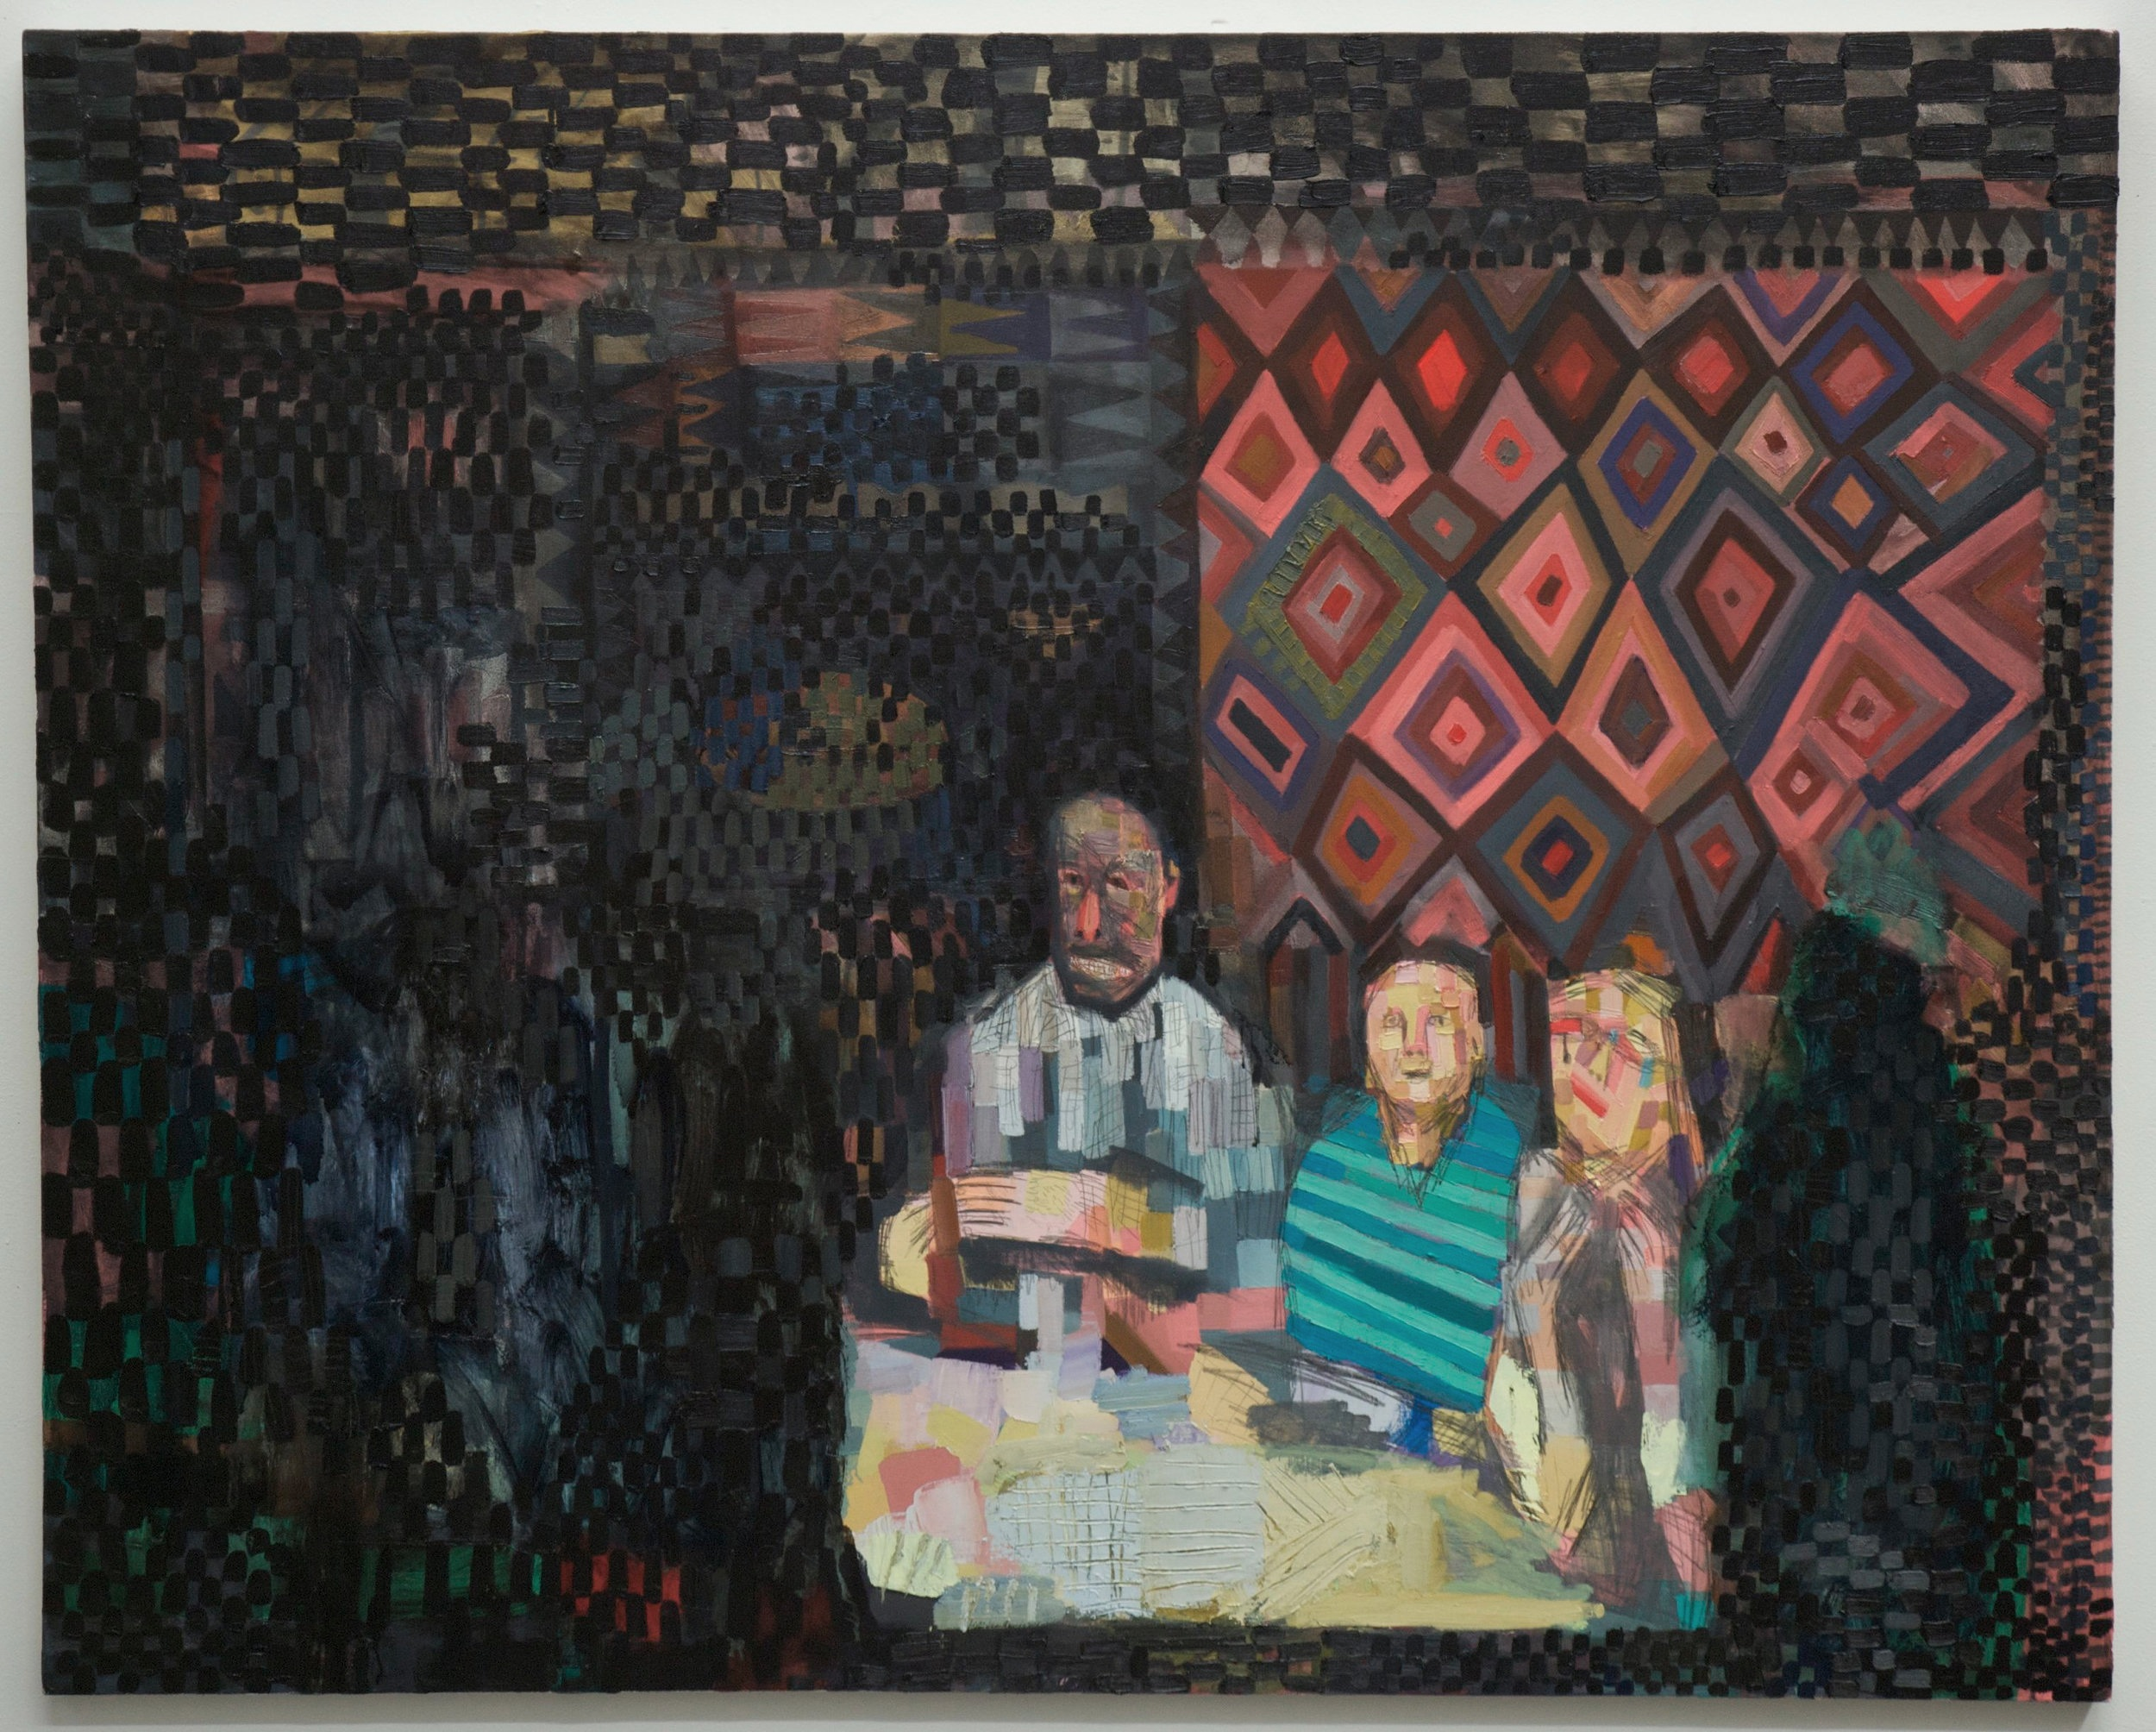 Dividing the Body (Family Portrait)  2012, Oil on Canvas, 48x60 inches